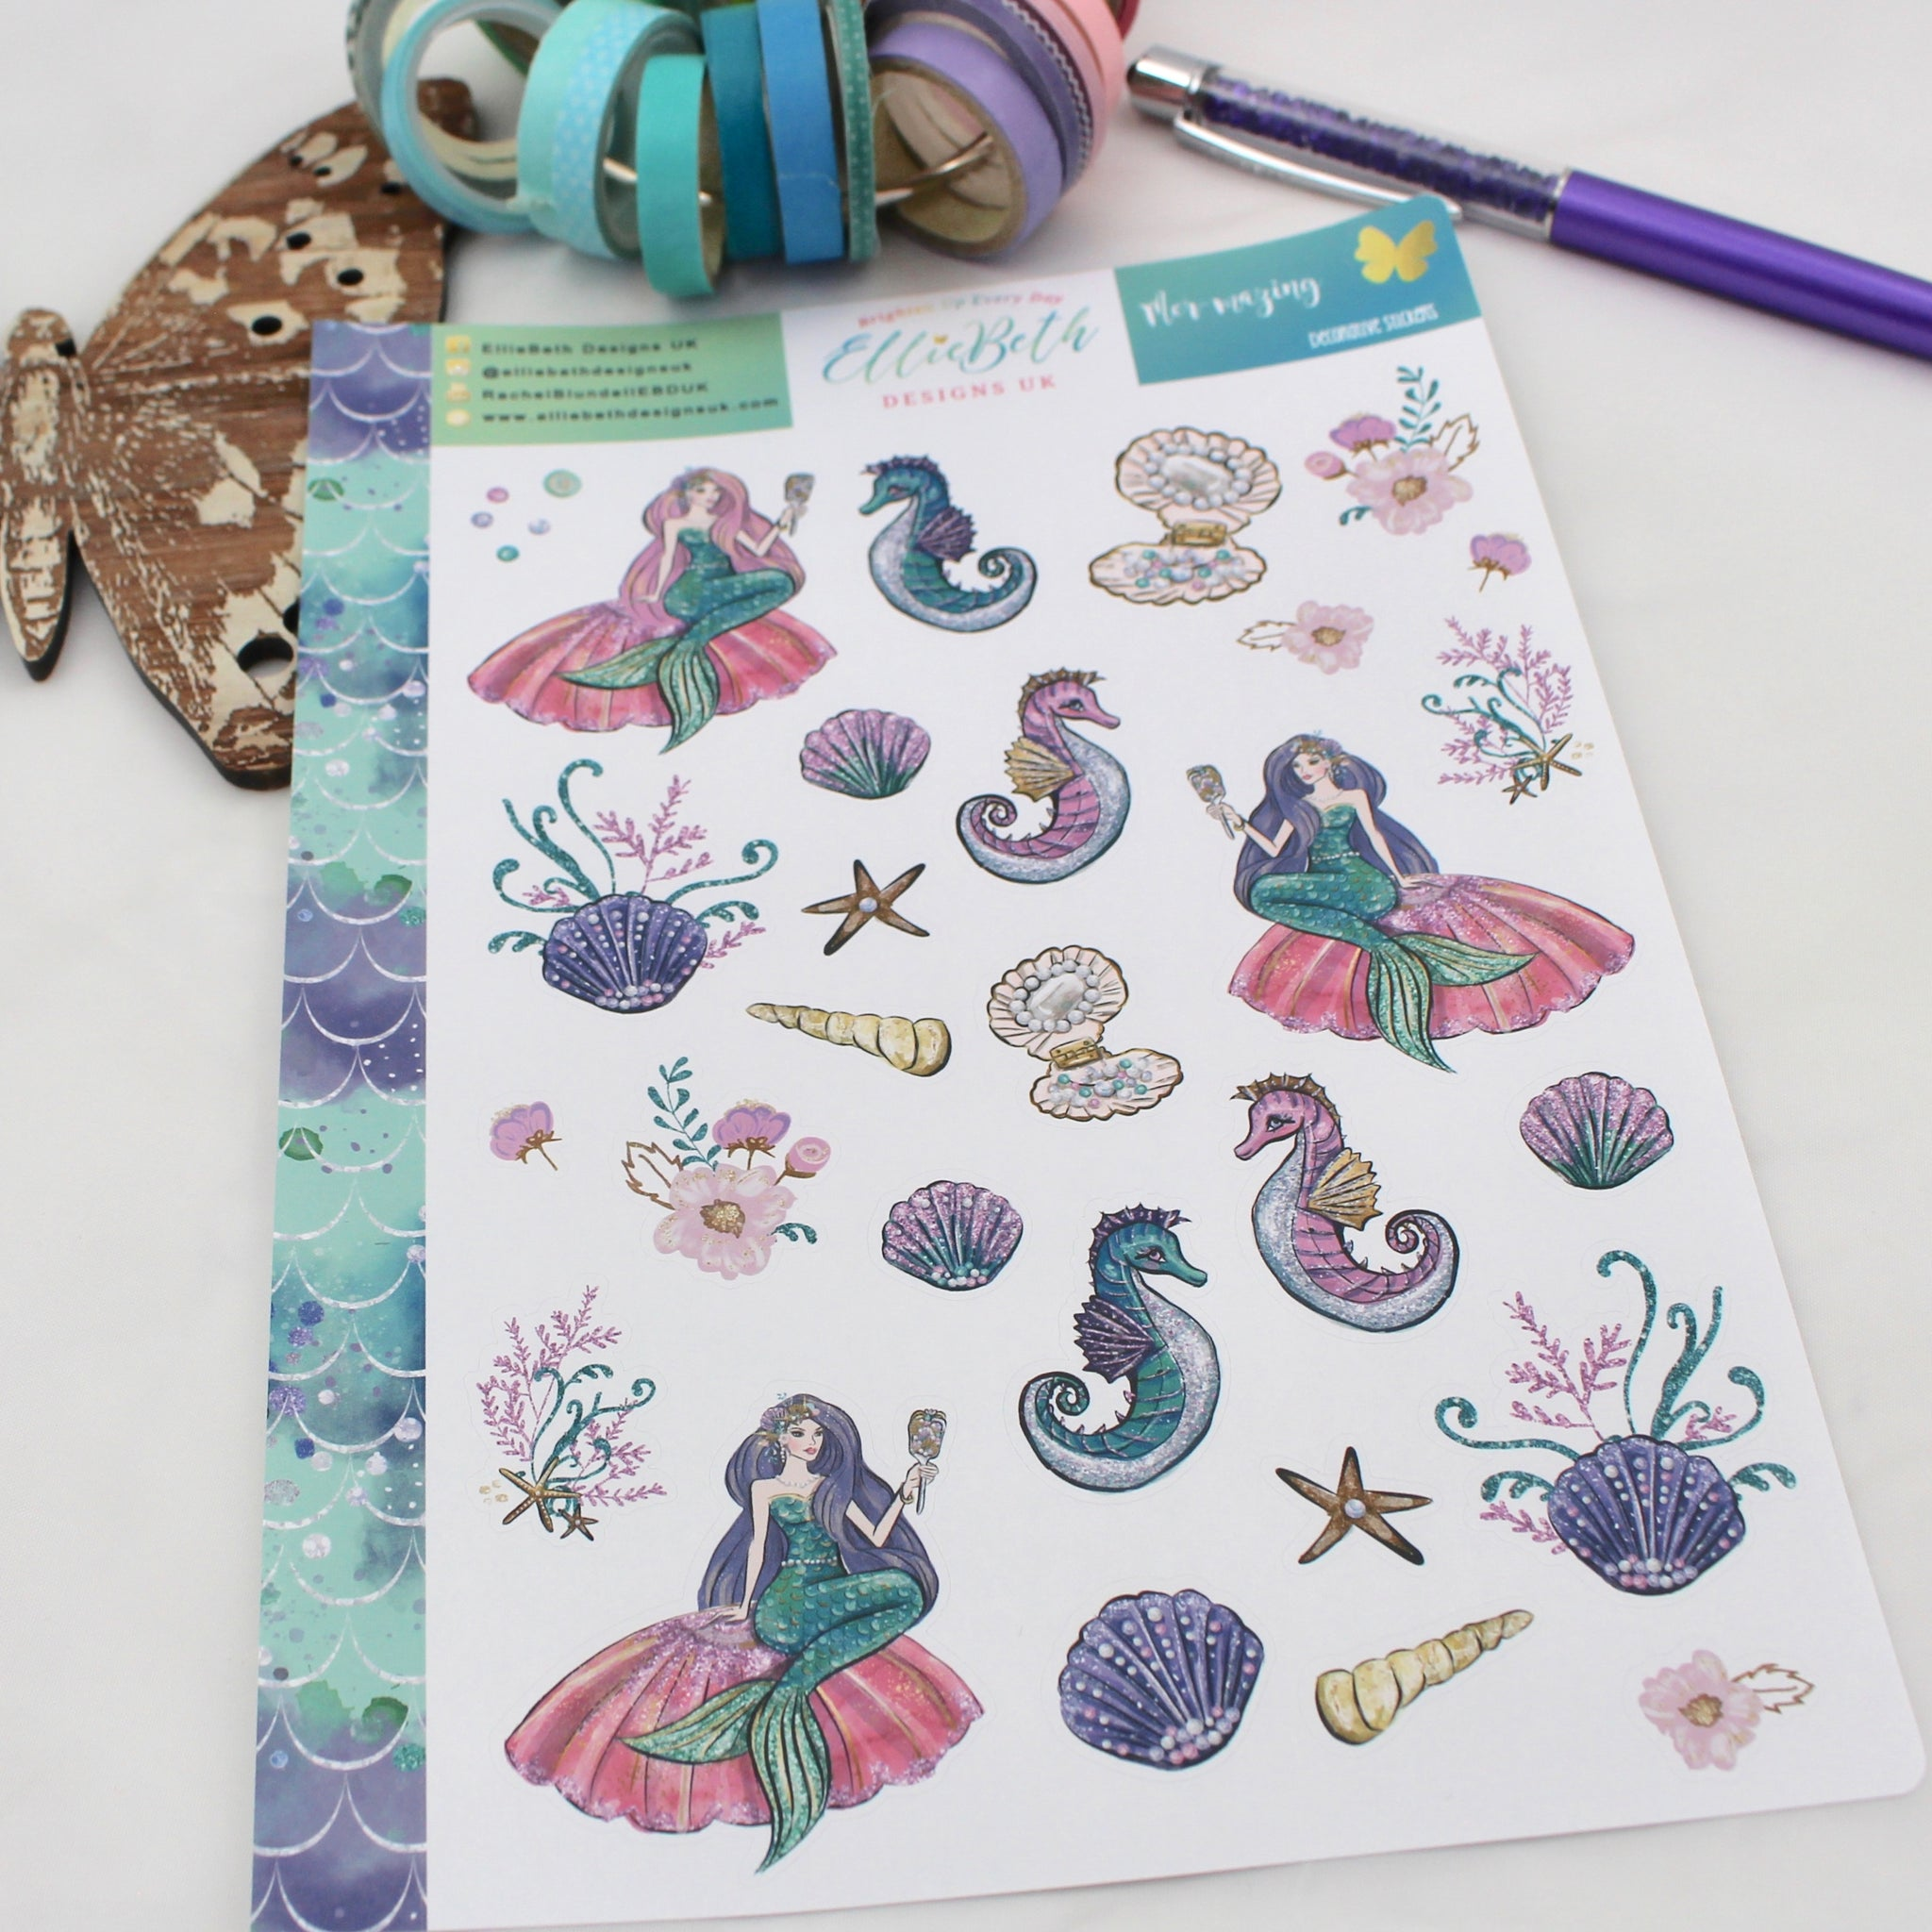 Mer-mazing - Decorative Sheet -  A5 binder ready planner stickers - EllieBeth Designs UK